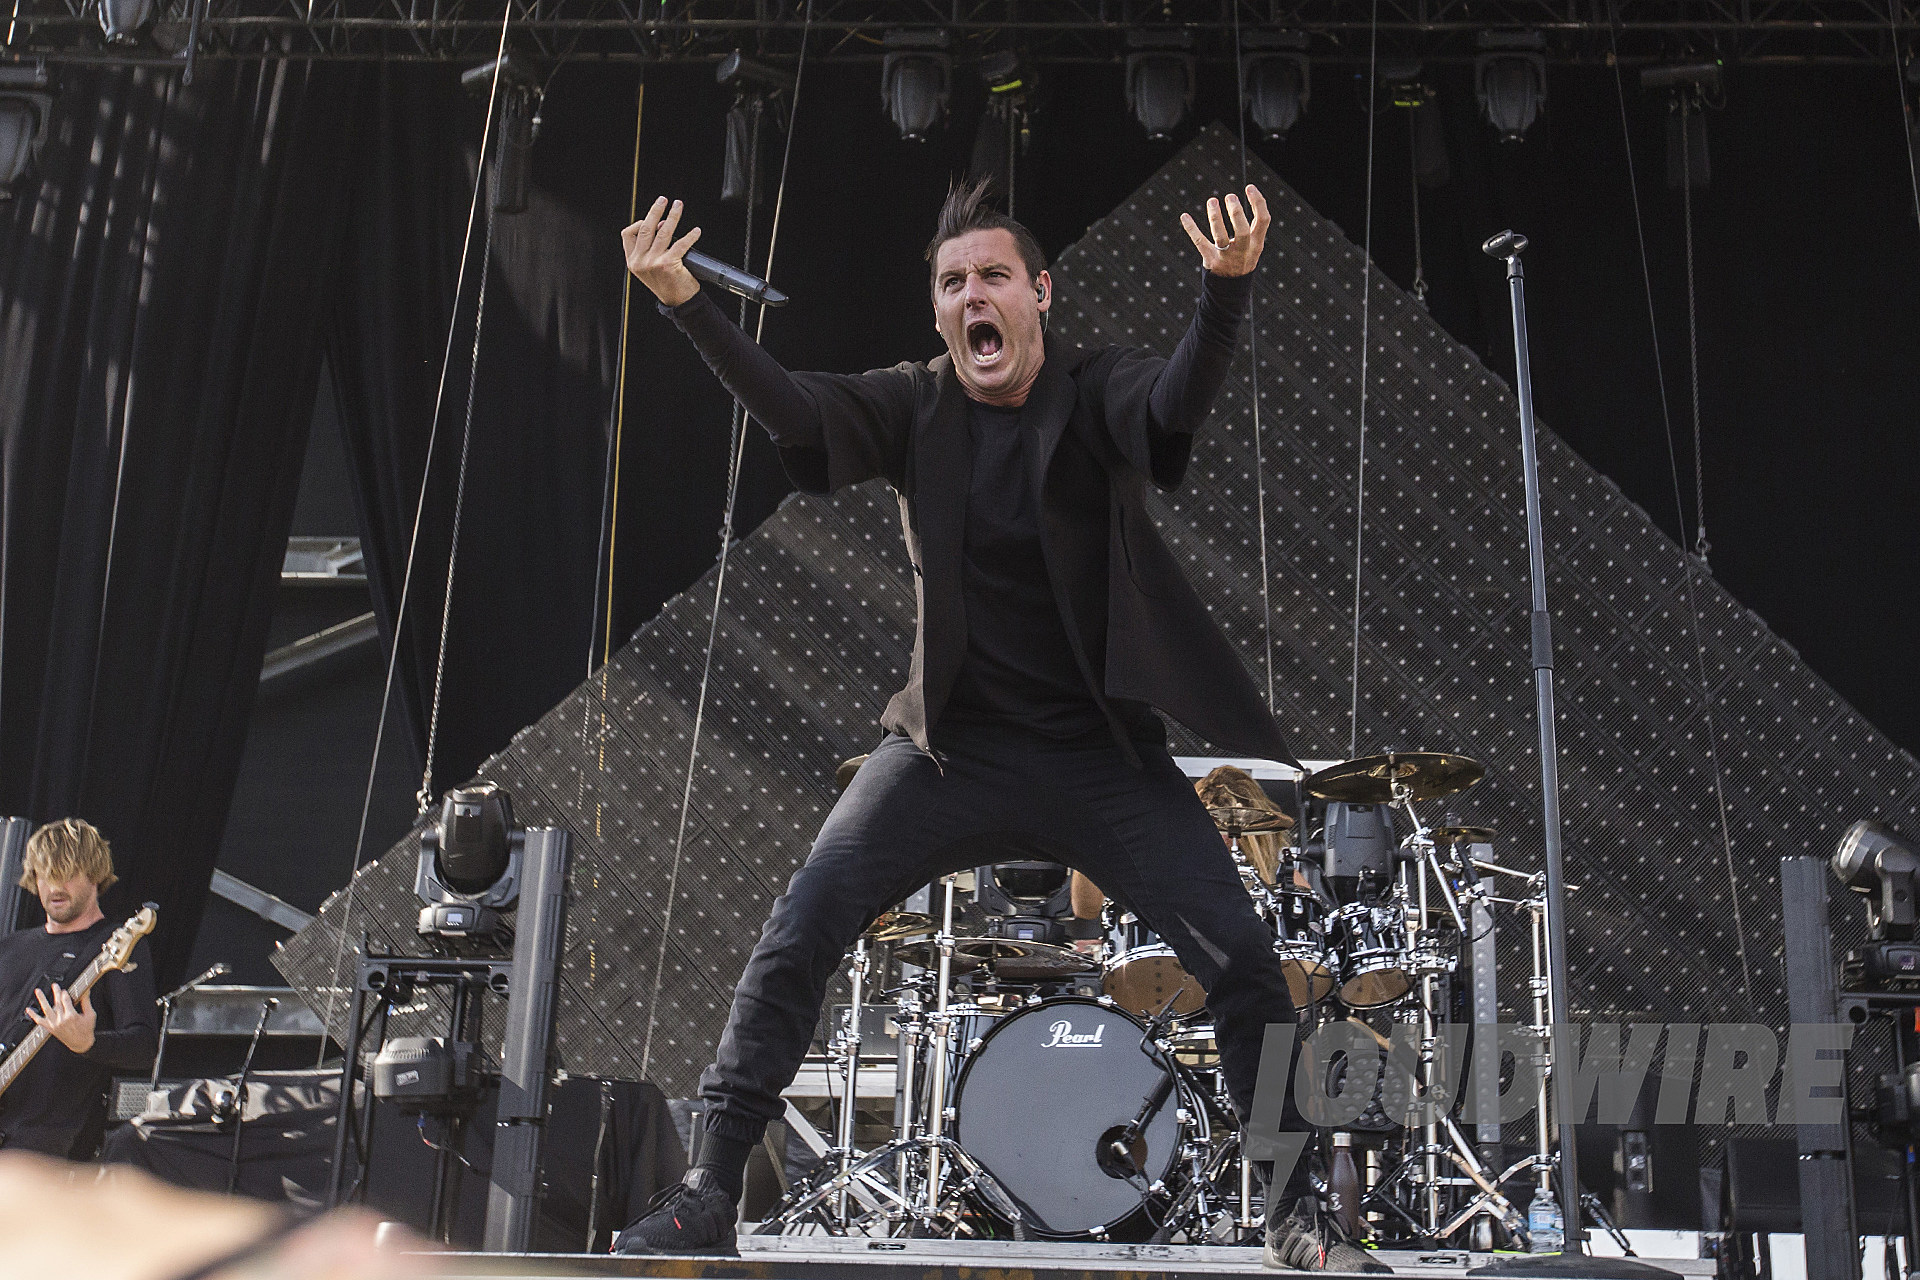 Parkway Drive's Winston McCall: I'd Rather Be an Underdog Than Over-Hyped